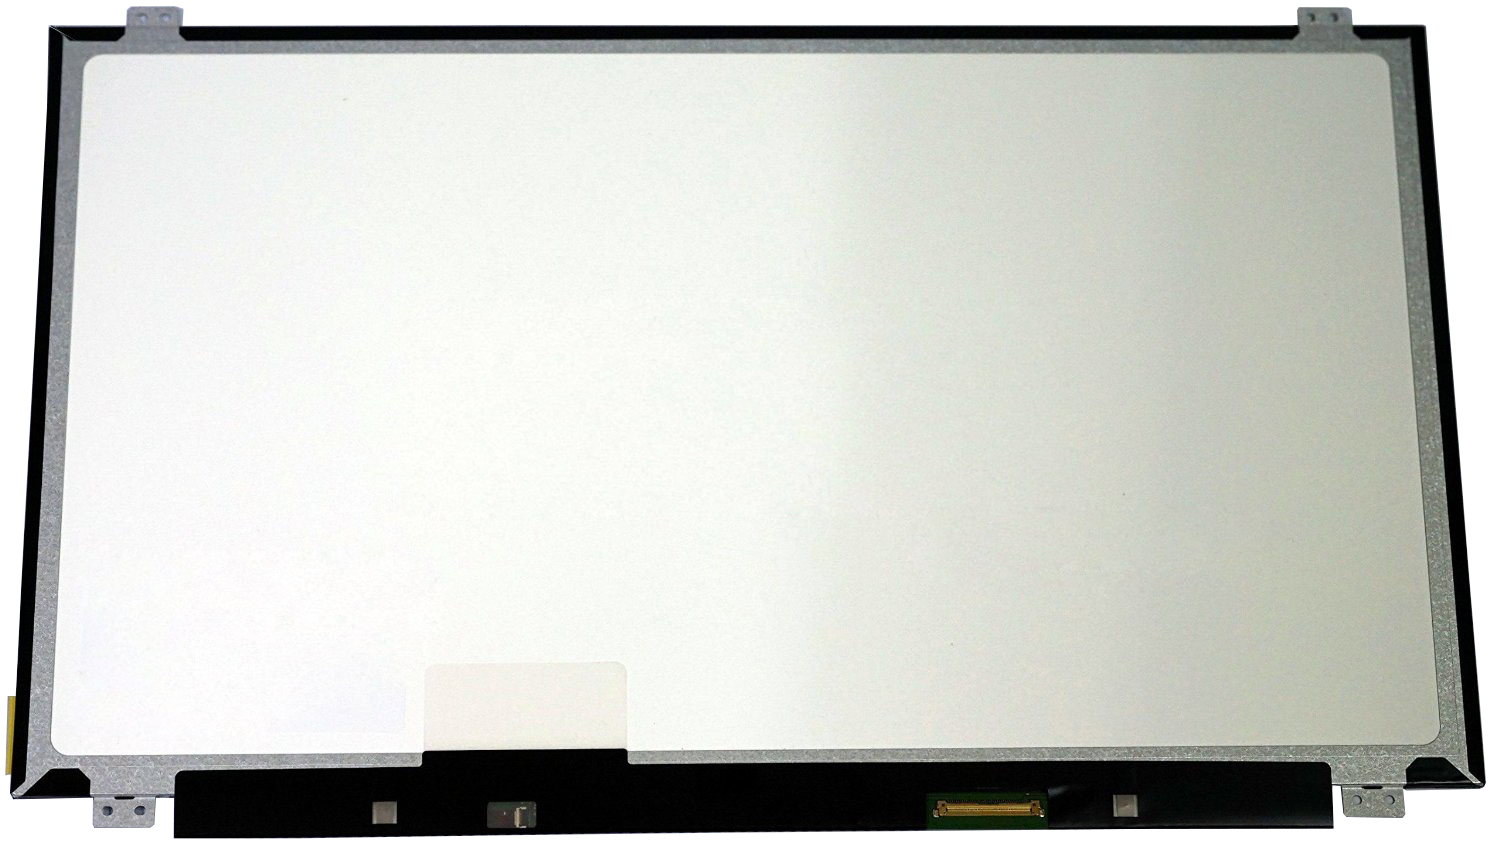 QuYing Laptop LCD Screen for ACER ASPIRE E5-411 SERIES (14.0 inch 1366x768 30pin N) quying laptop lcd screen for acer aspire ethos 5951g timeline 5745 7531 series 15 6 inch 1366x768 40pin n